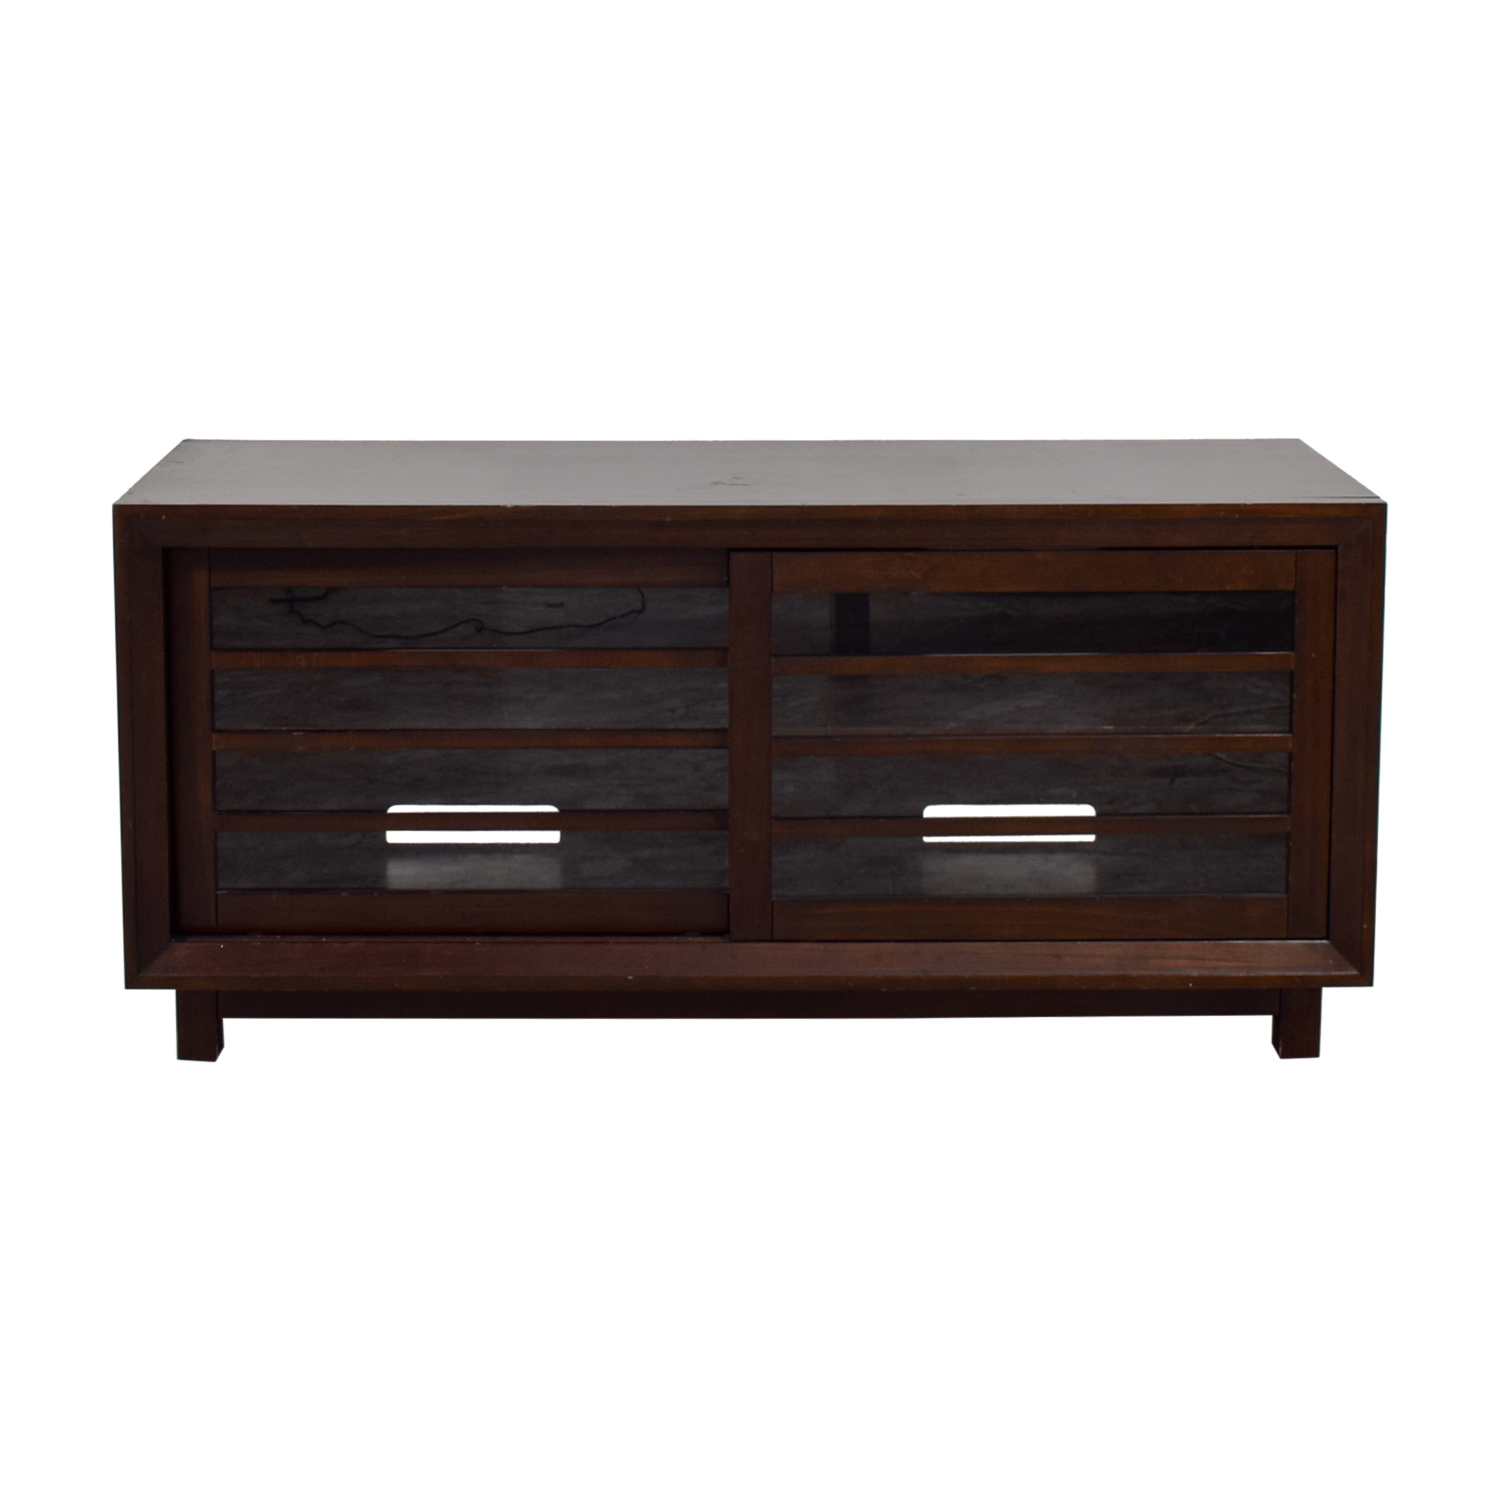 shop Crate & Barrel Wood and Glass Media Console Crate & Barrel Storage